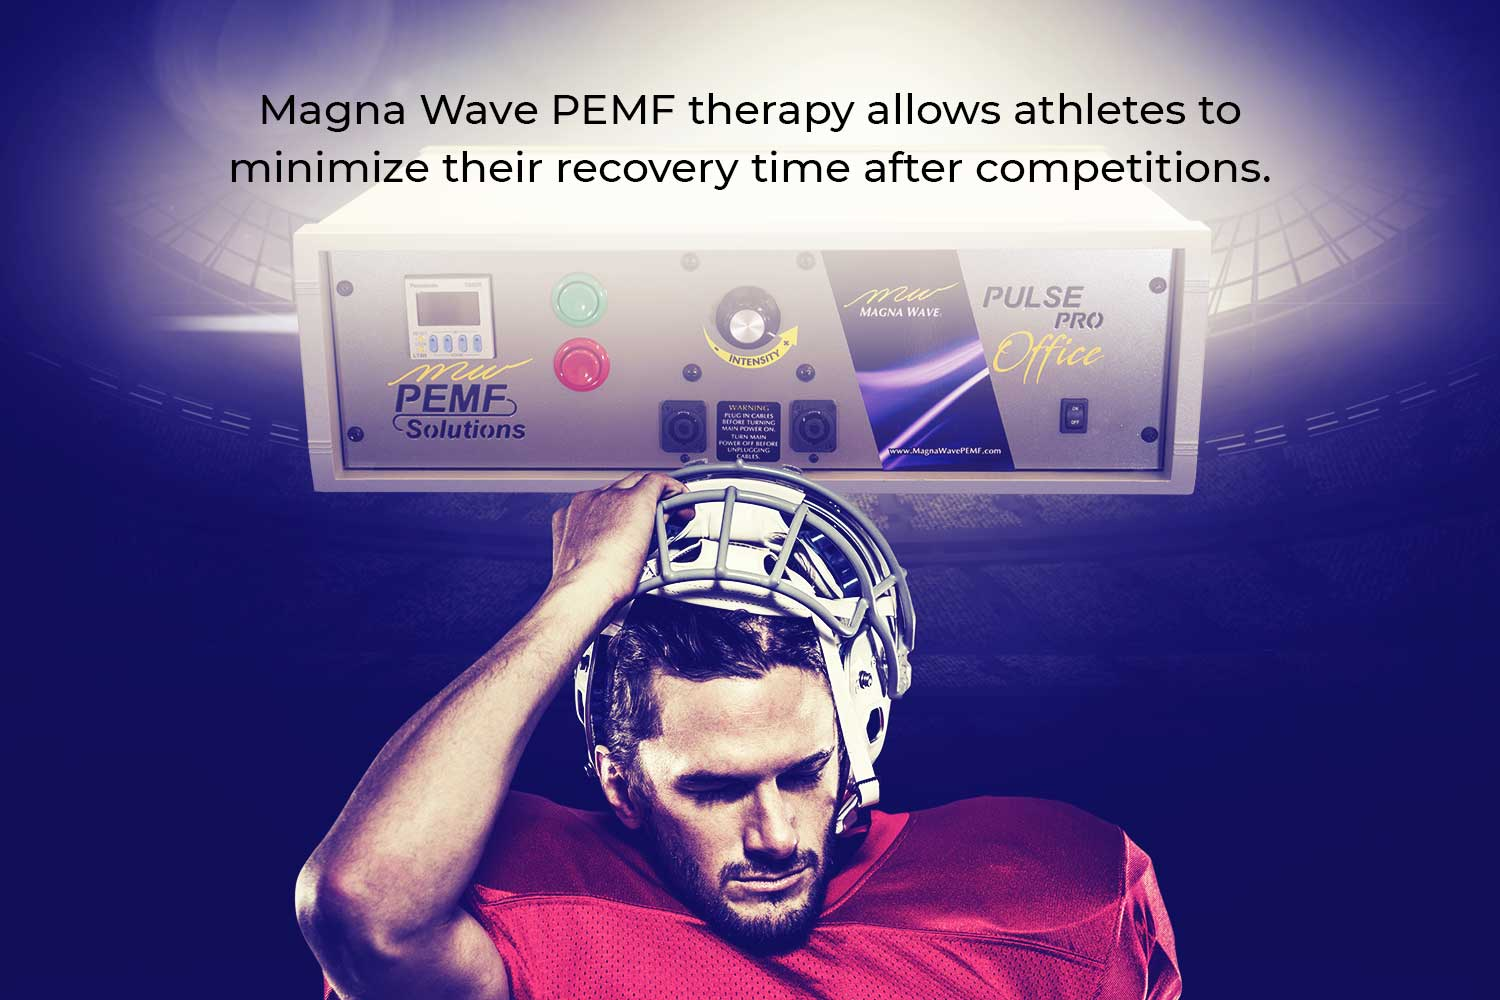 Magna Wave PEMF therapy allows athletes to minimize their recovery time after competitions.